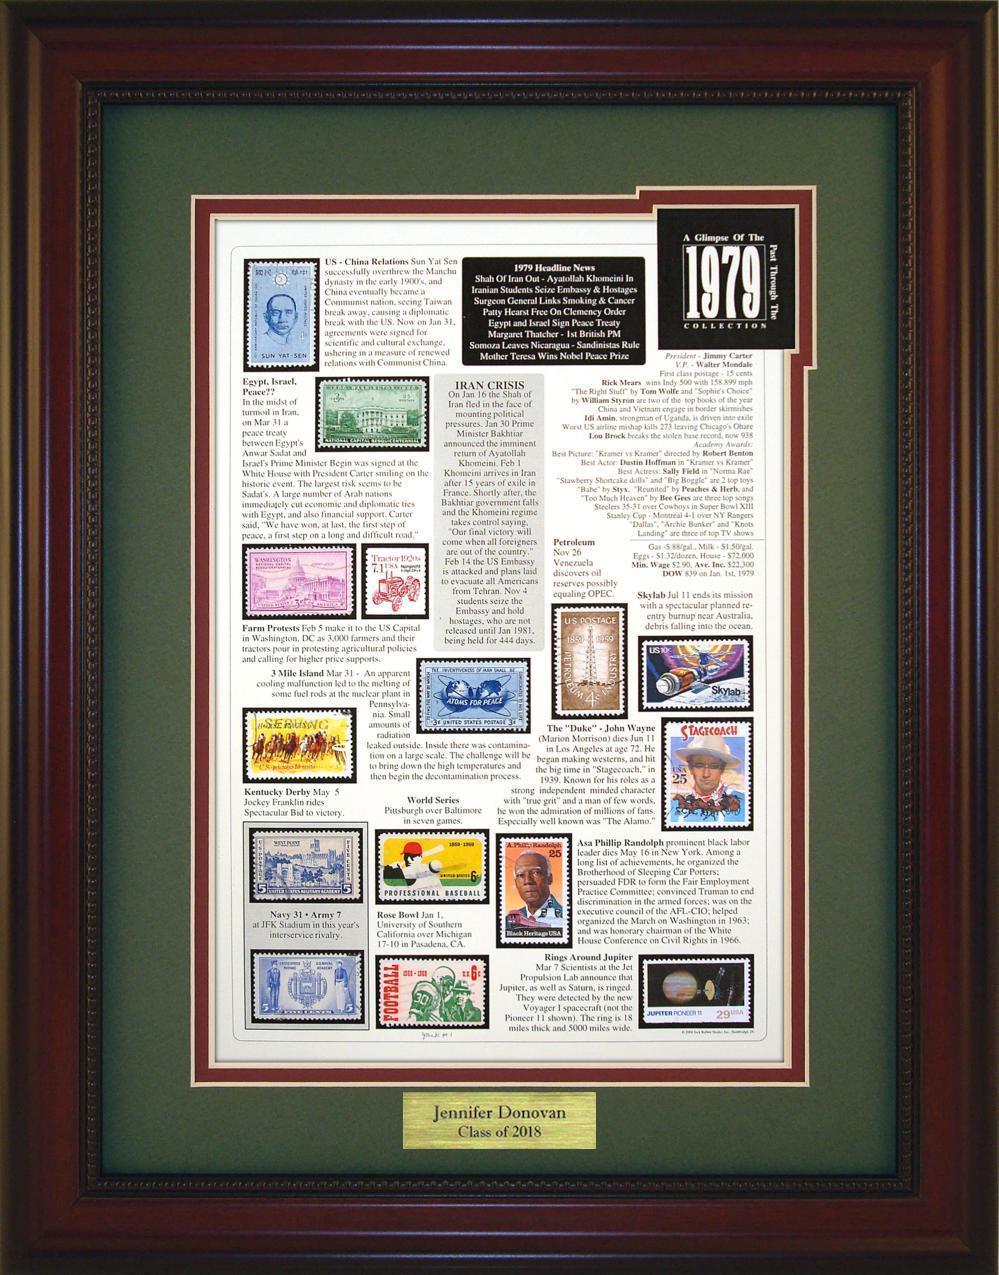 Year 1979 - Personalized Unique Framed Gift